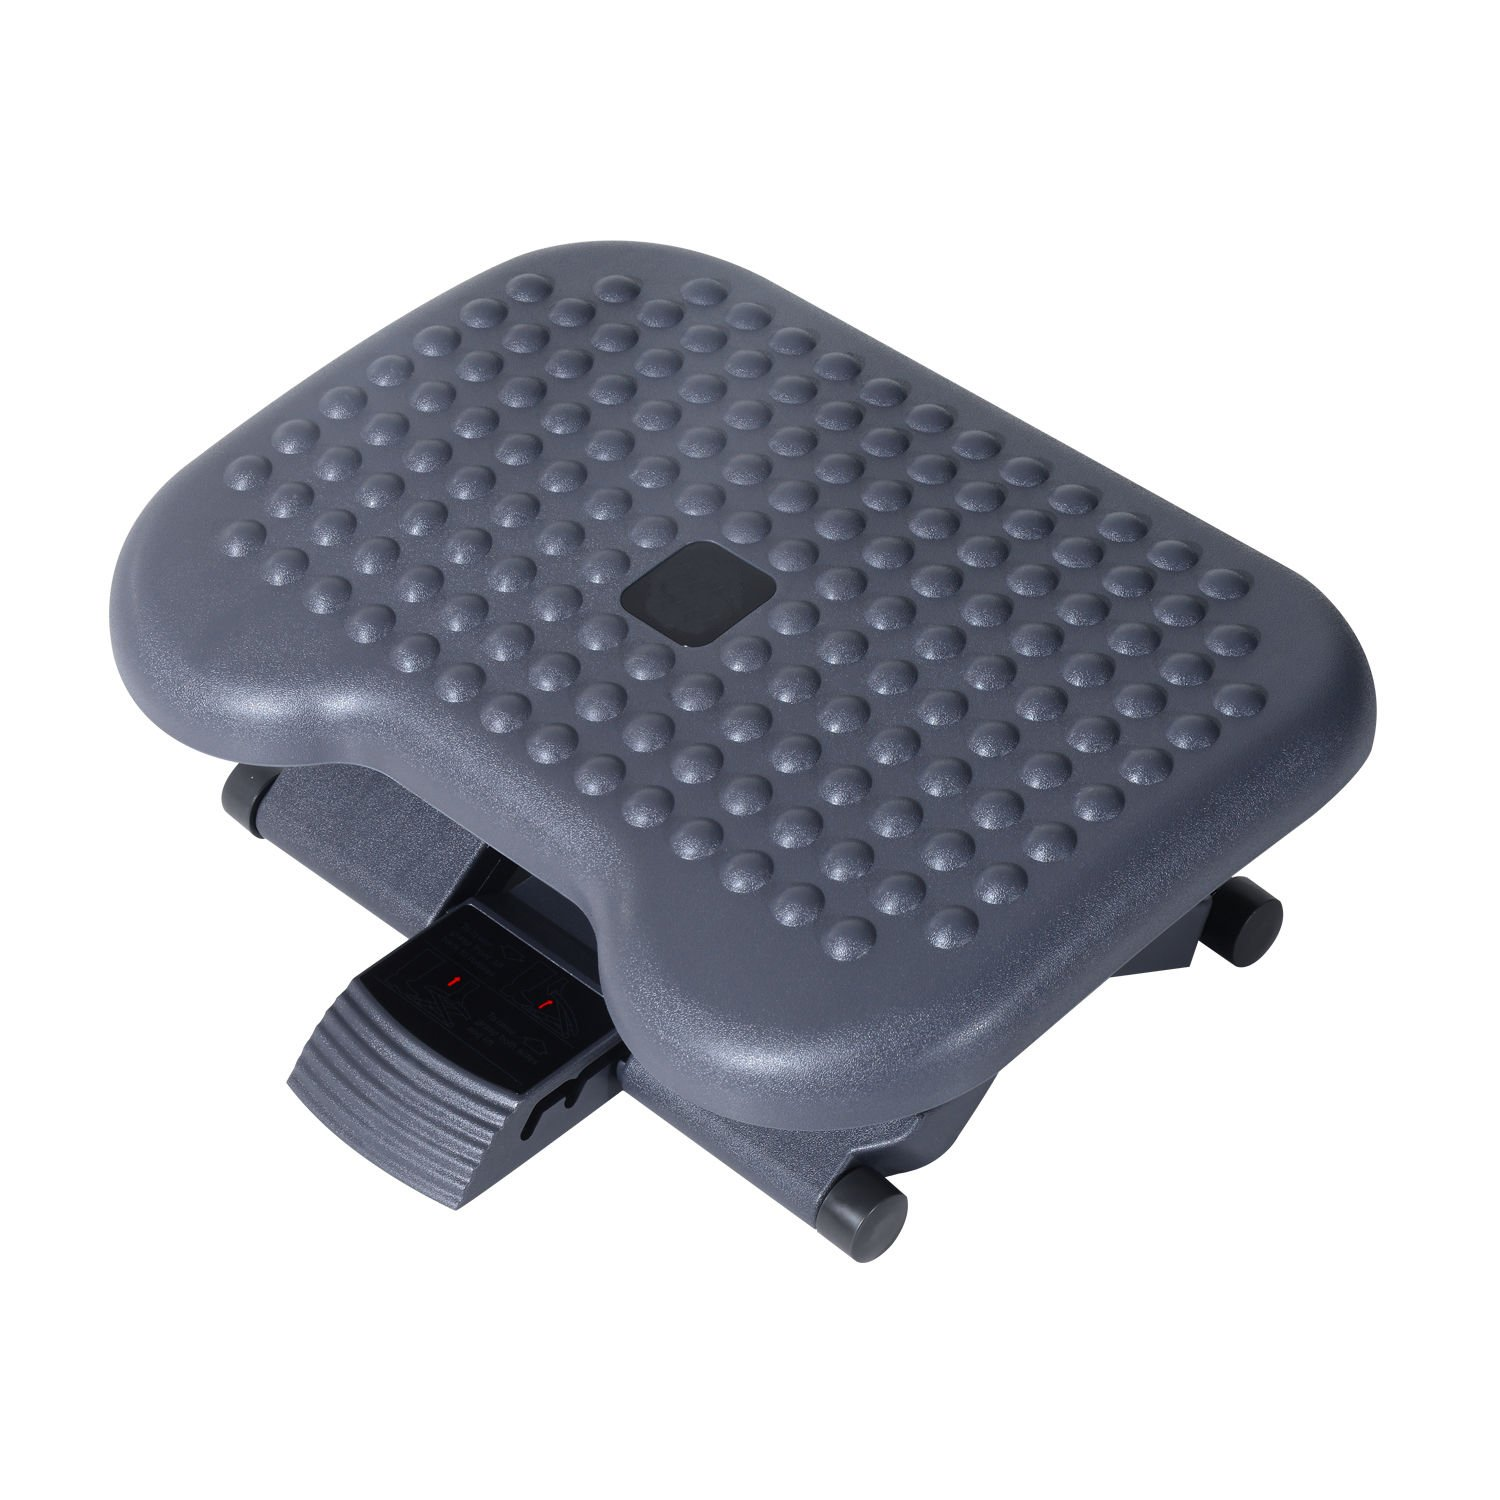 Foot Rest Height/Tilt Adjustable 460 x 360 mm Perfect For Home or Office Unbranded 1